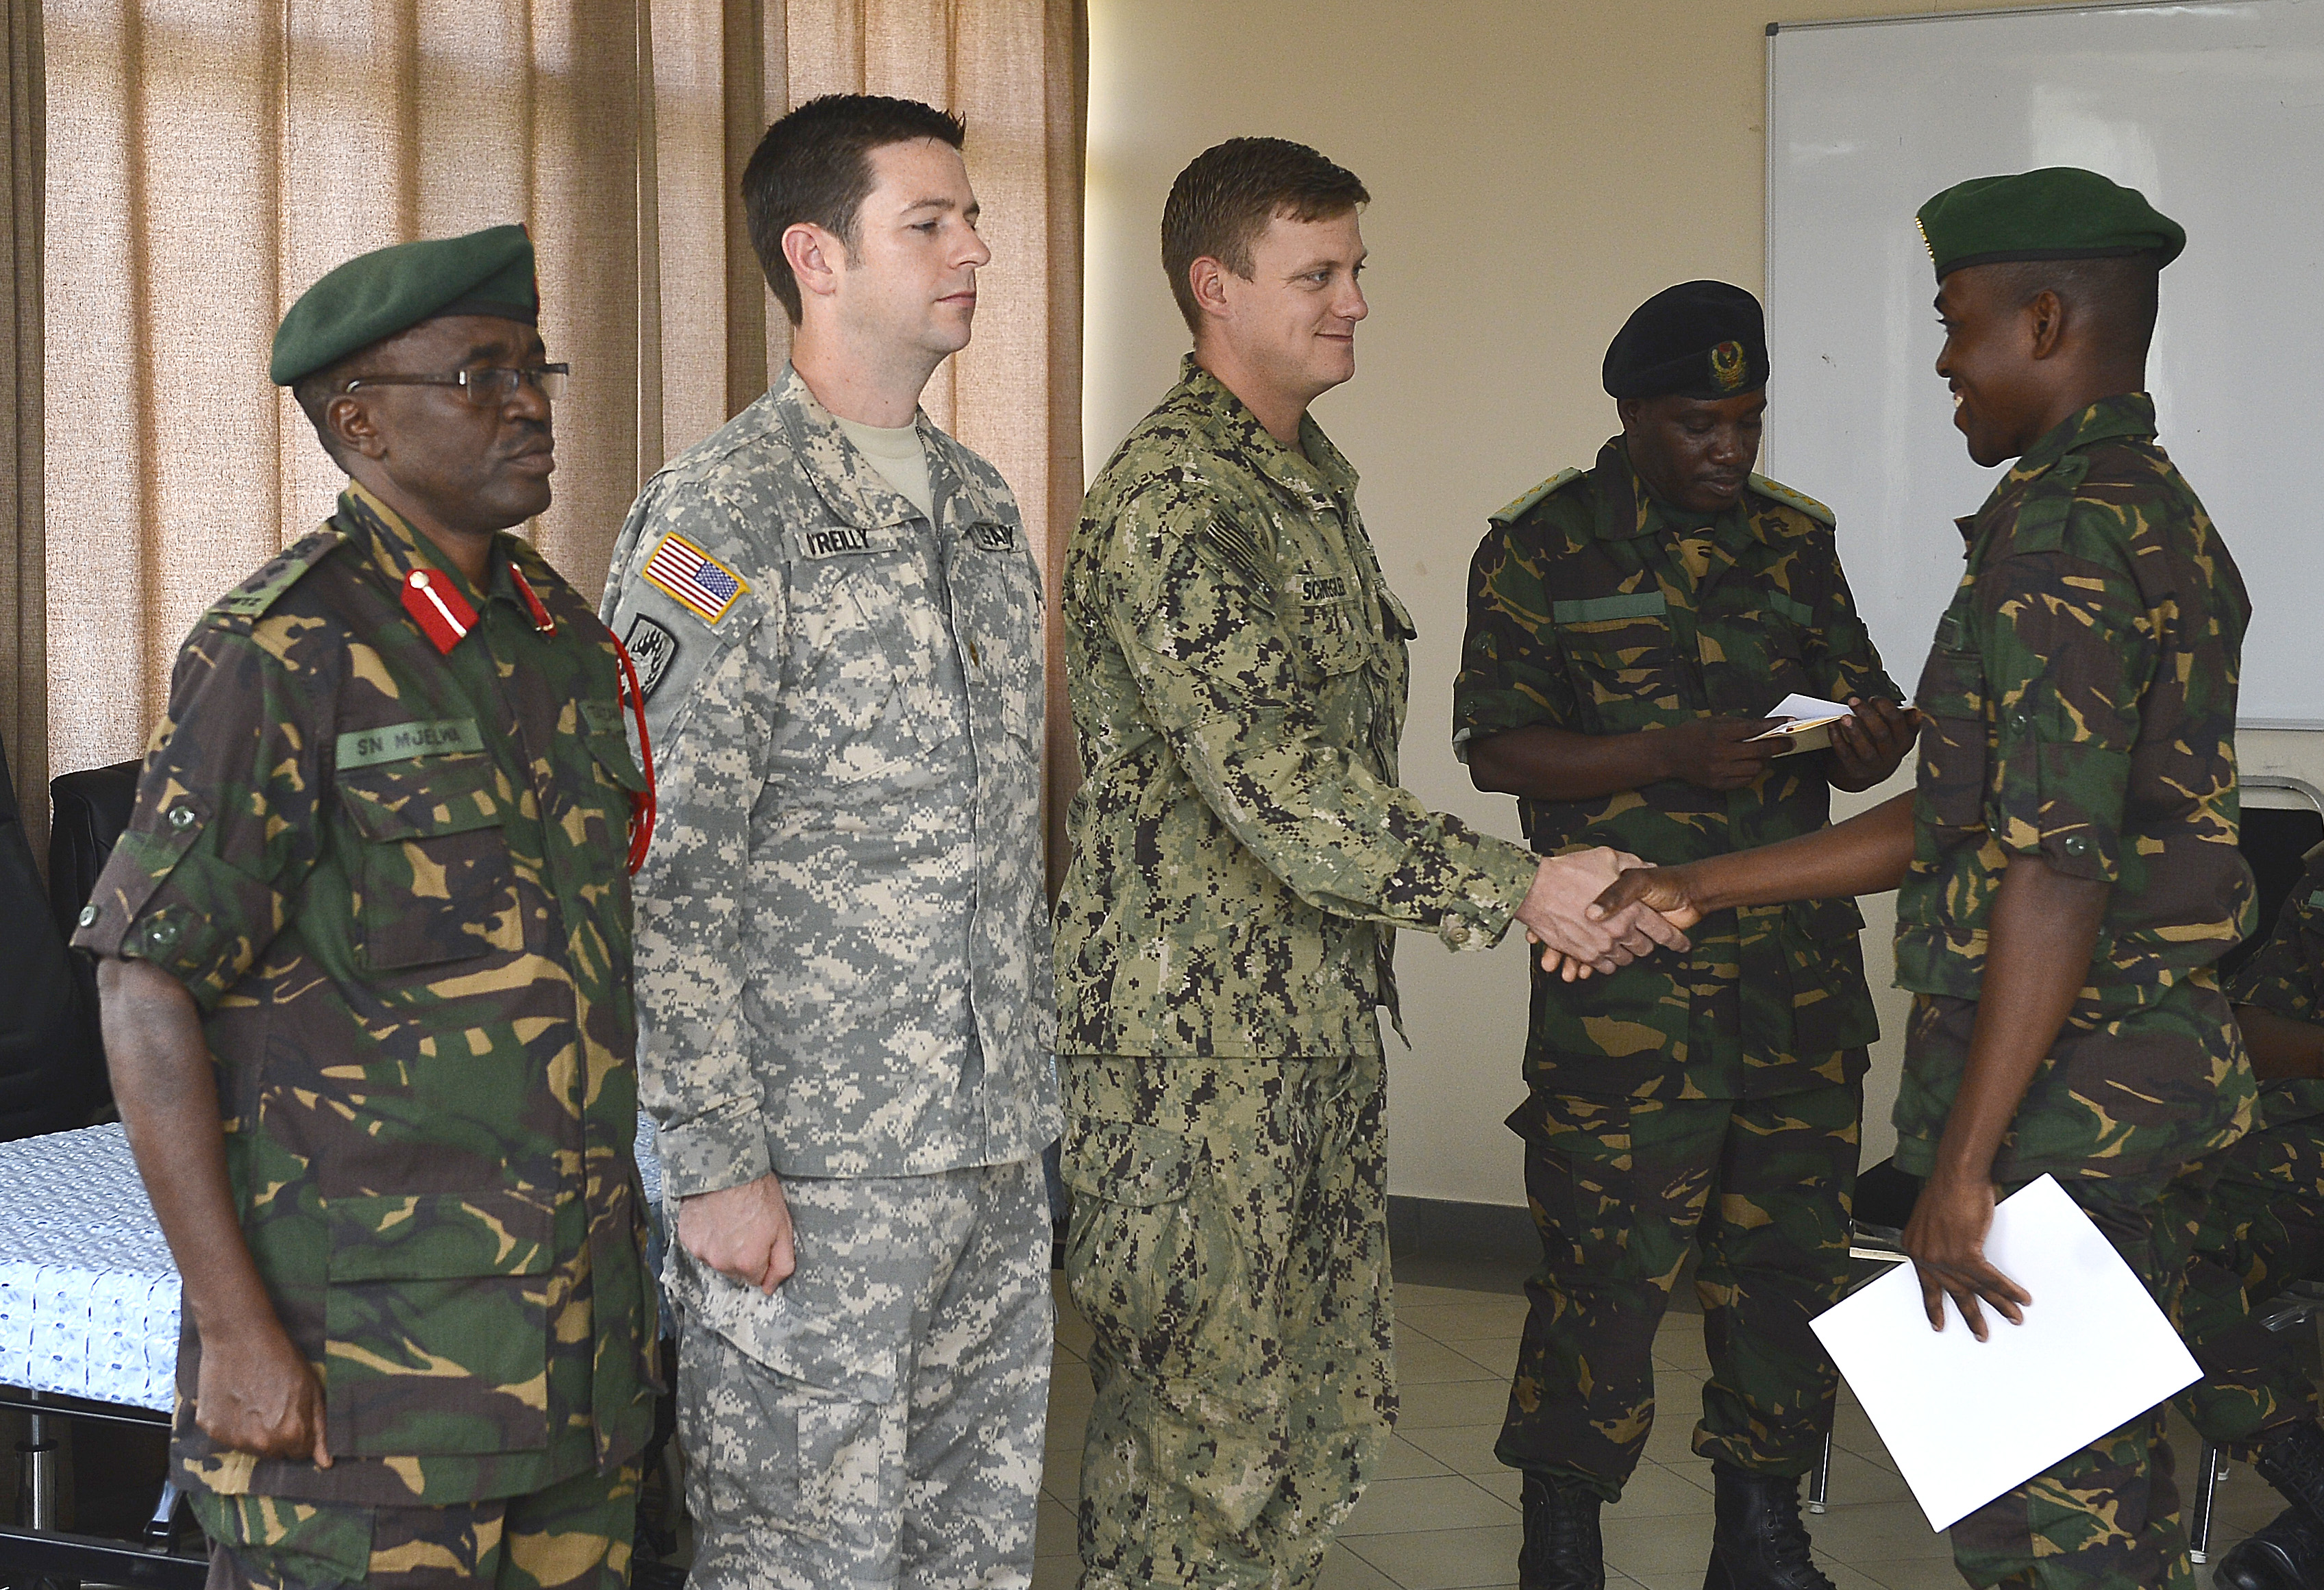 An Explosive Ordnance Disposal Technician, assigned to CJTF-HOA, congratulates Pvt.Ramadhan Badru Mwita, a Tanzania People's Defense Force ammunition technician, during the Humanitarian Mine Action course graduation at the Peace Keeping Training Center in Dar es Salaam, Tanzania Aug. 27, 2015. (U.S. Air Force photo by Senior Airman Nesha Humes)